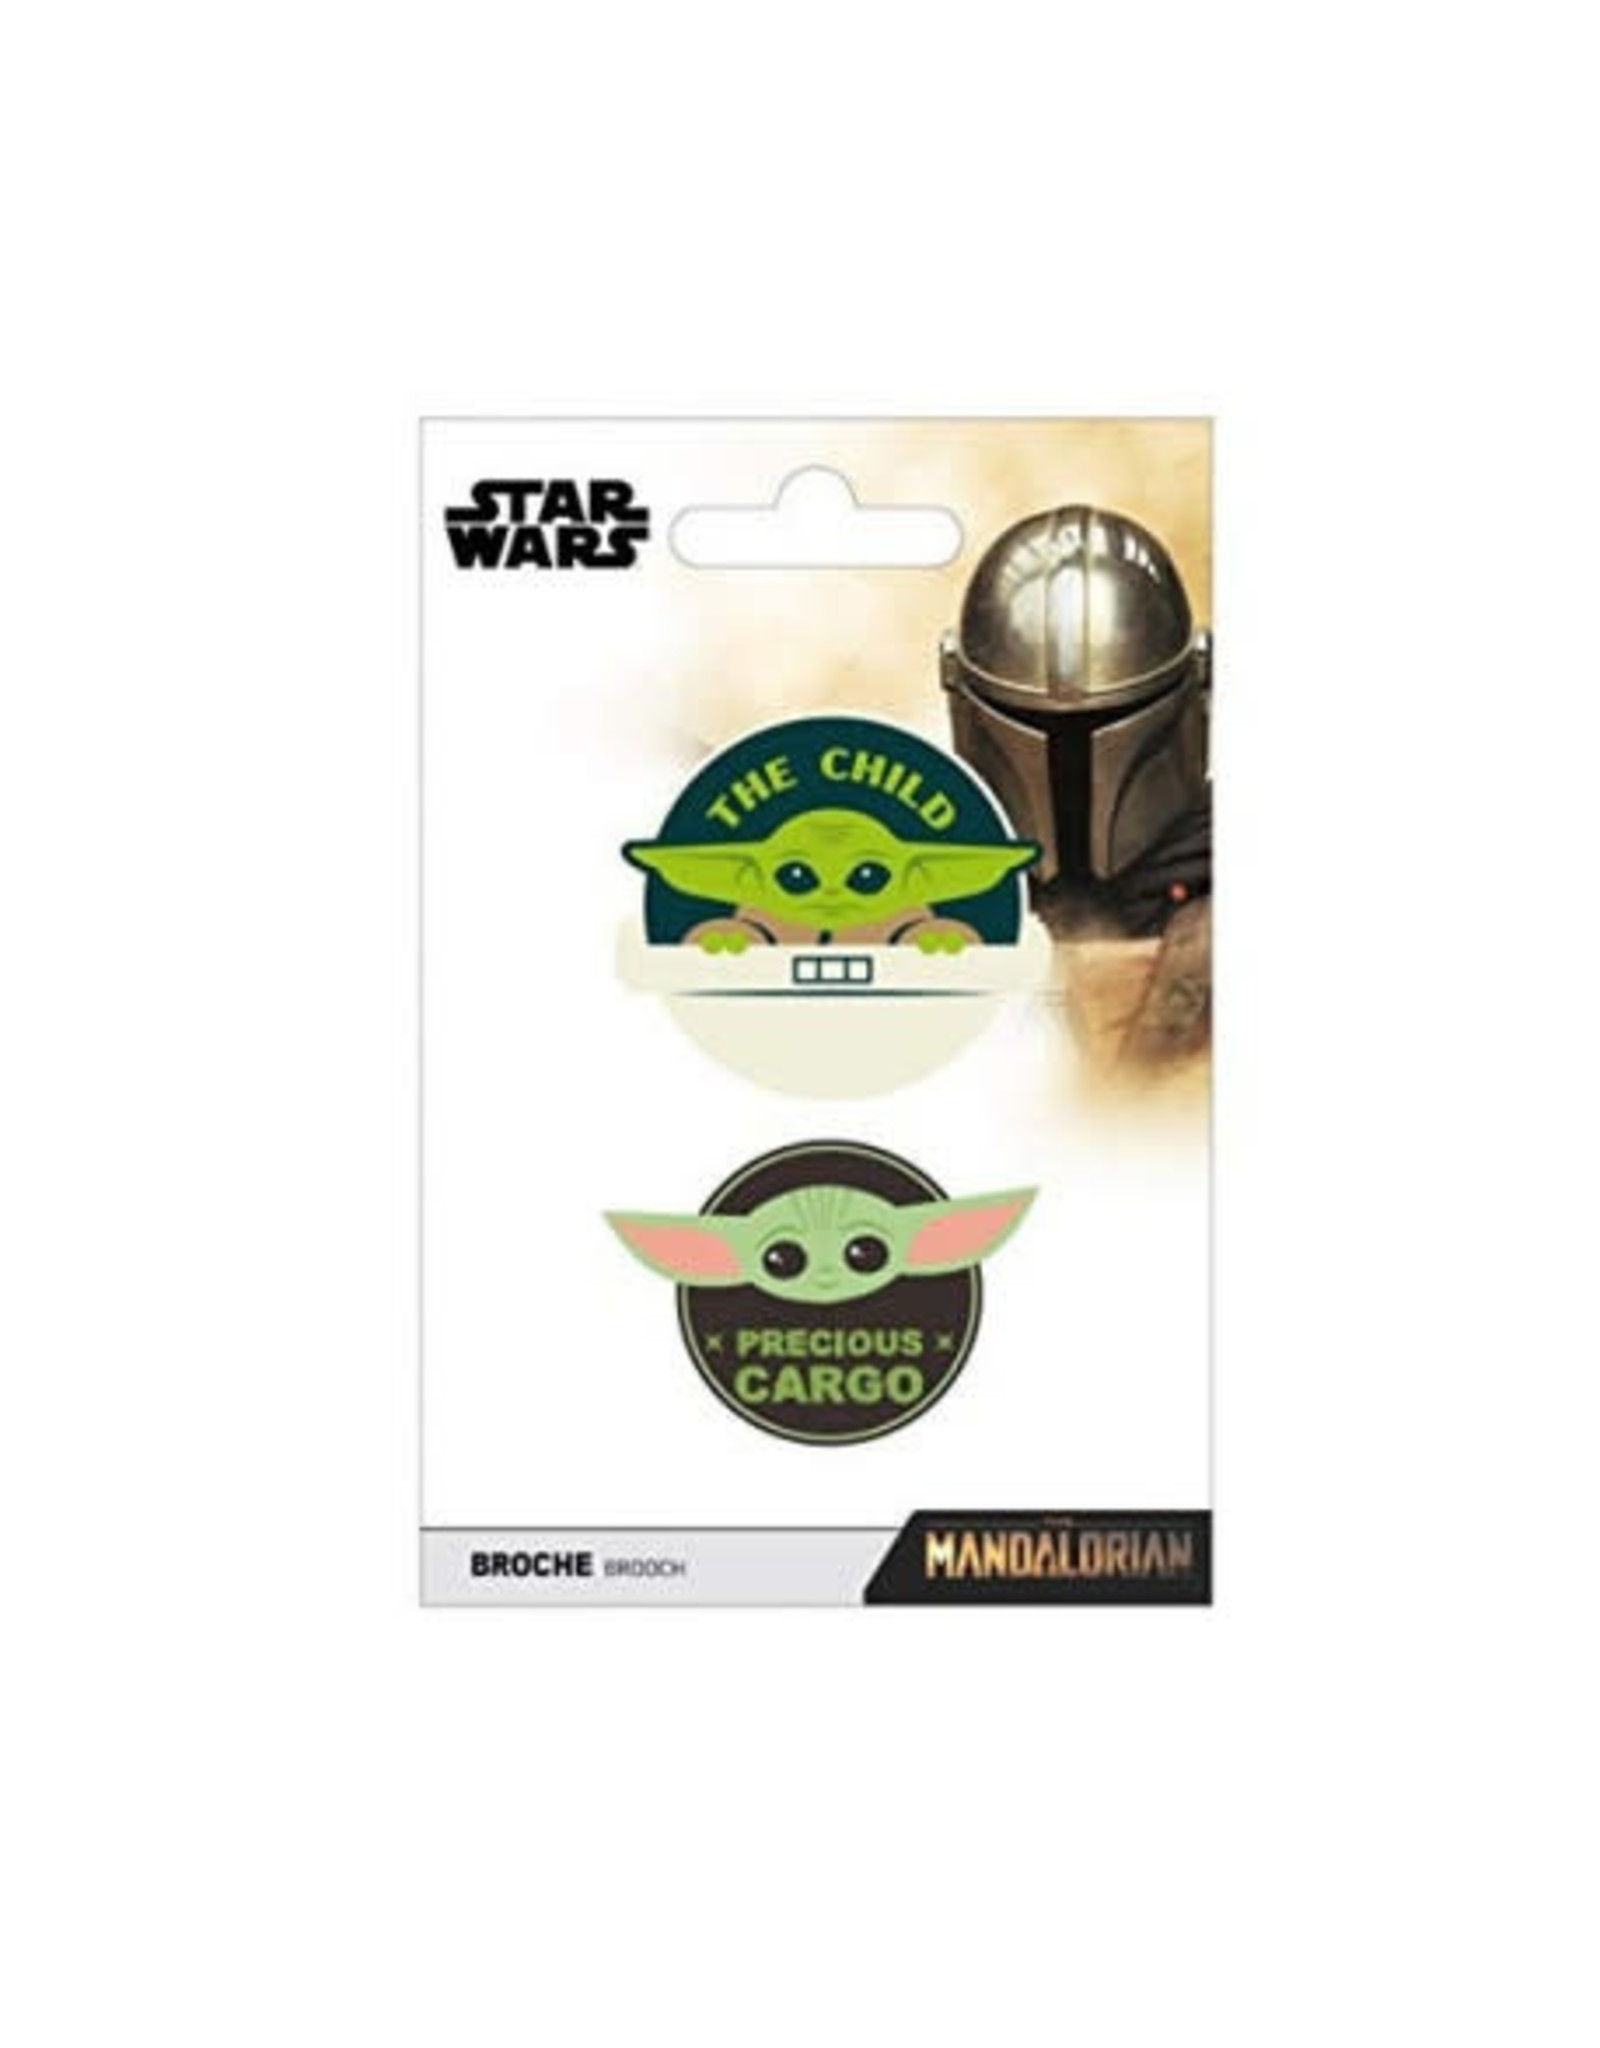 STAR WARS Set of 2 Pins -The Mandalorian: The Child